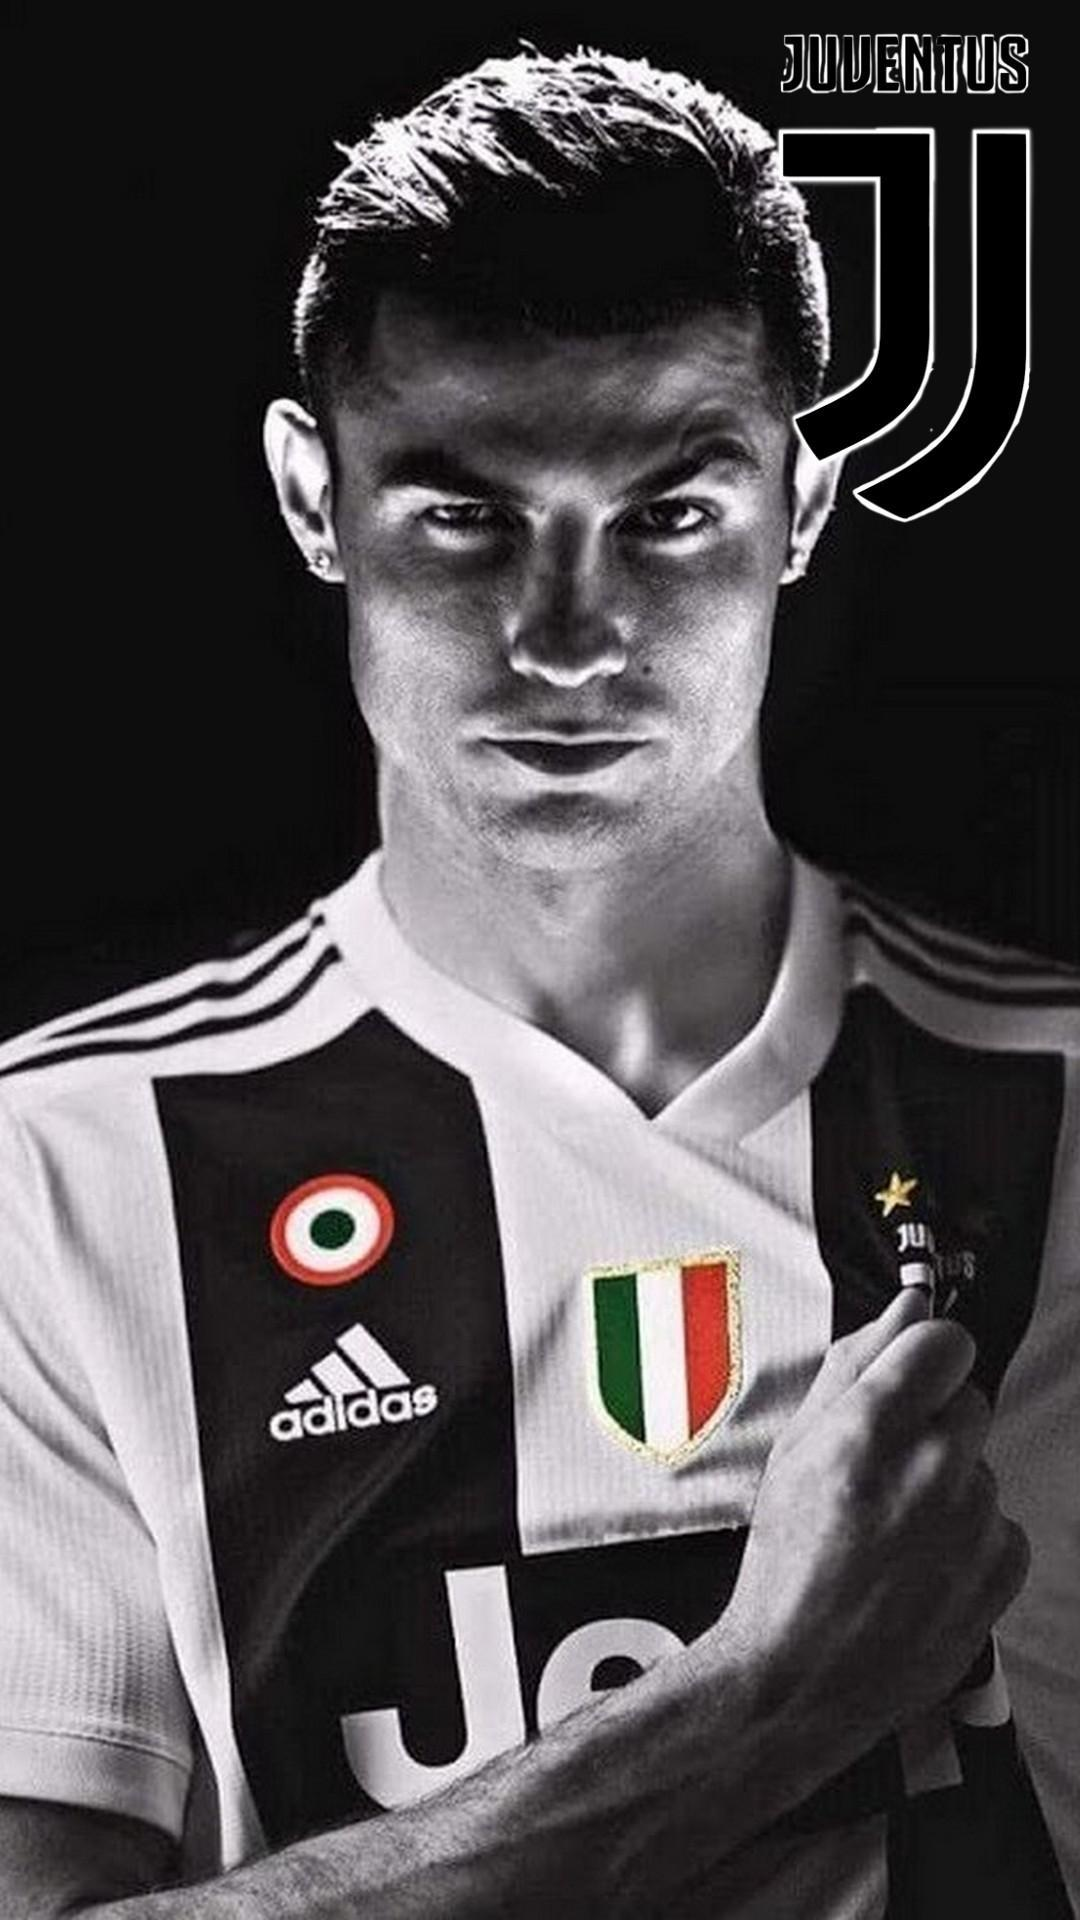 Juventus Ronaldo Wallpapers Wallpaper Cave